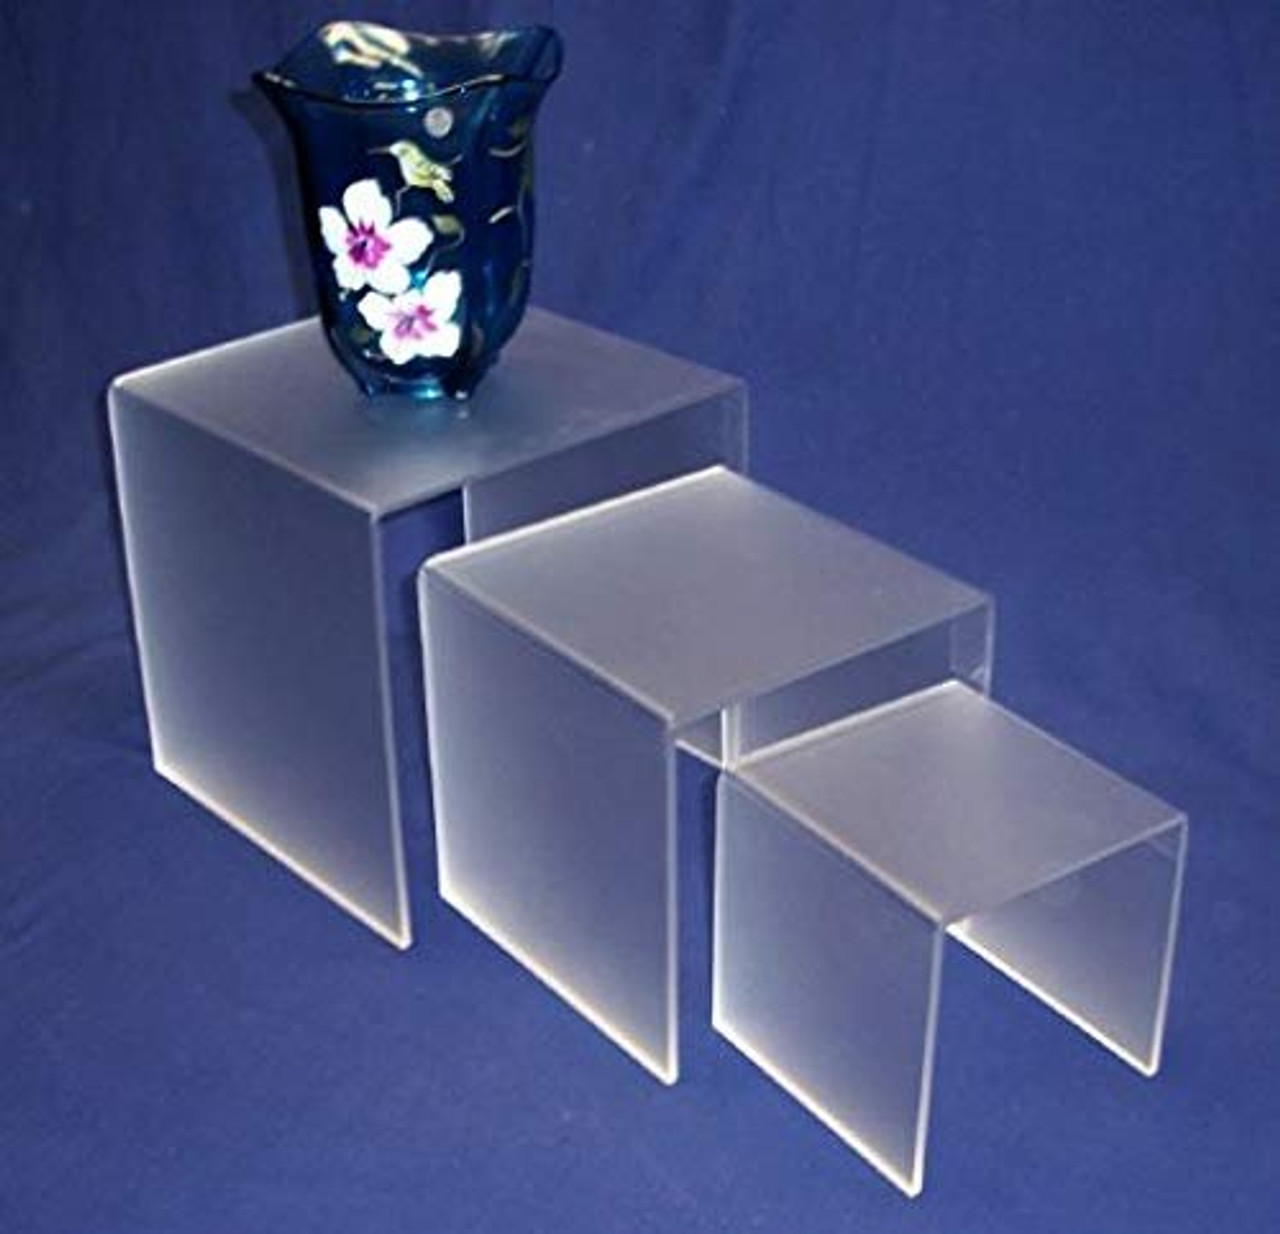 3 Piece Square Acrylic Riser Set, Frosted, 2 Sets Included